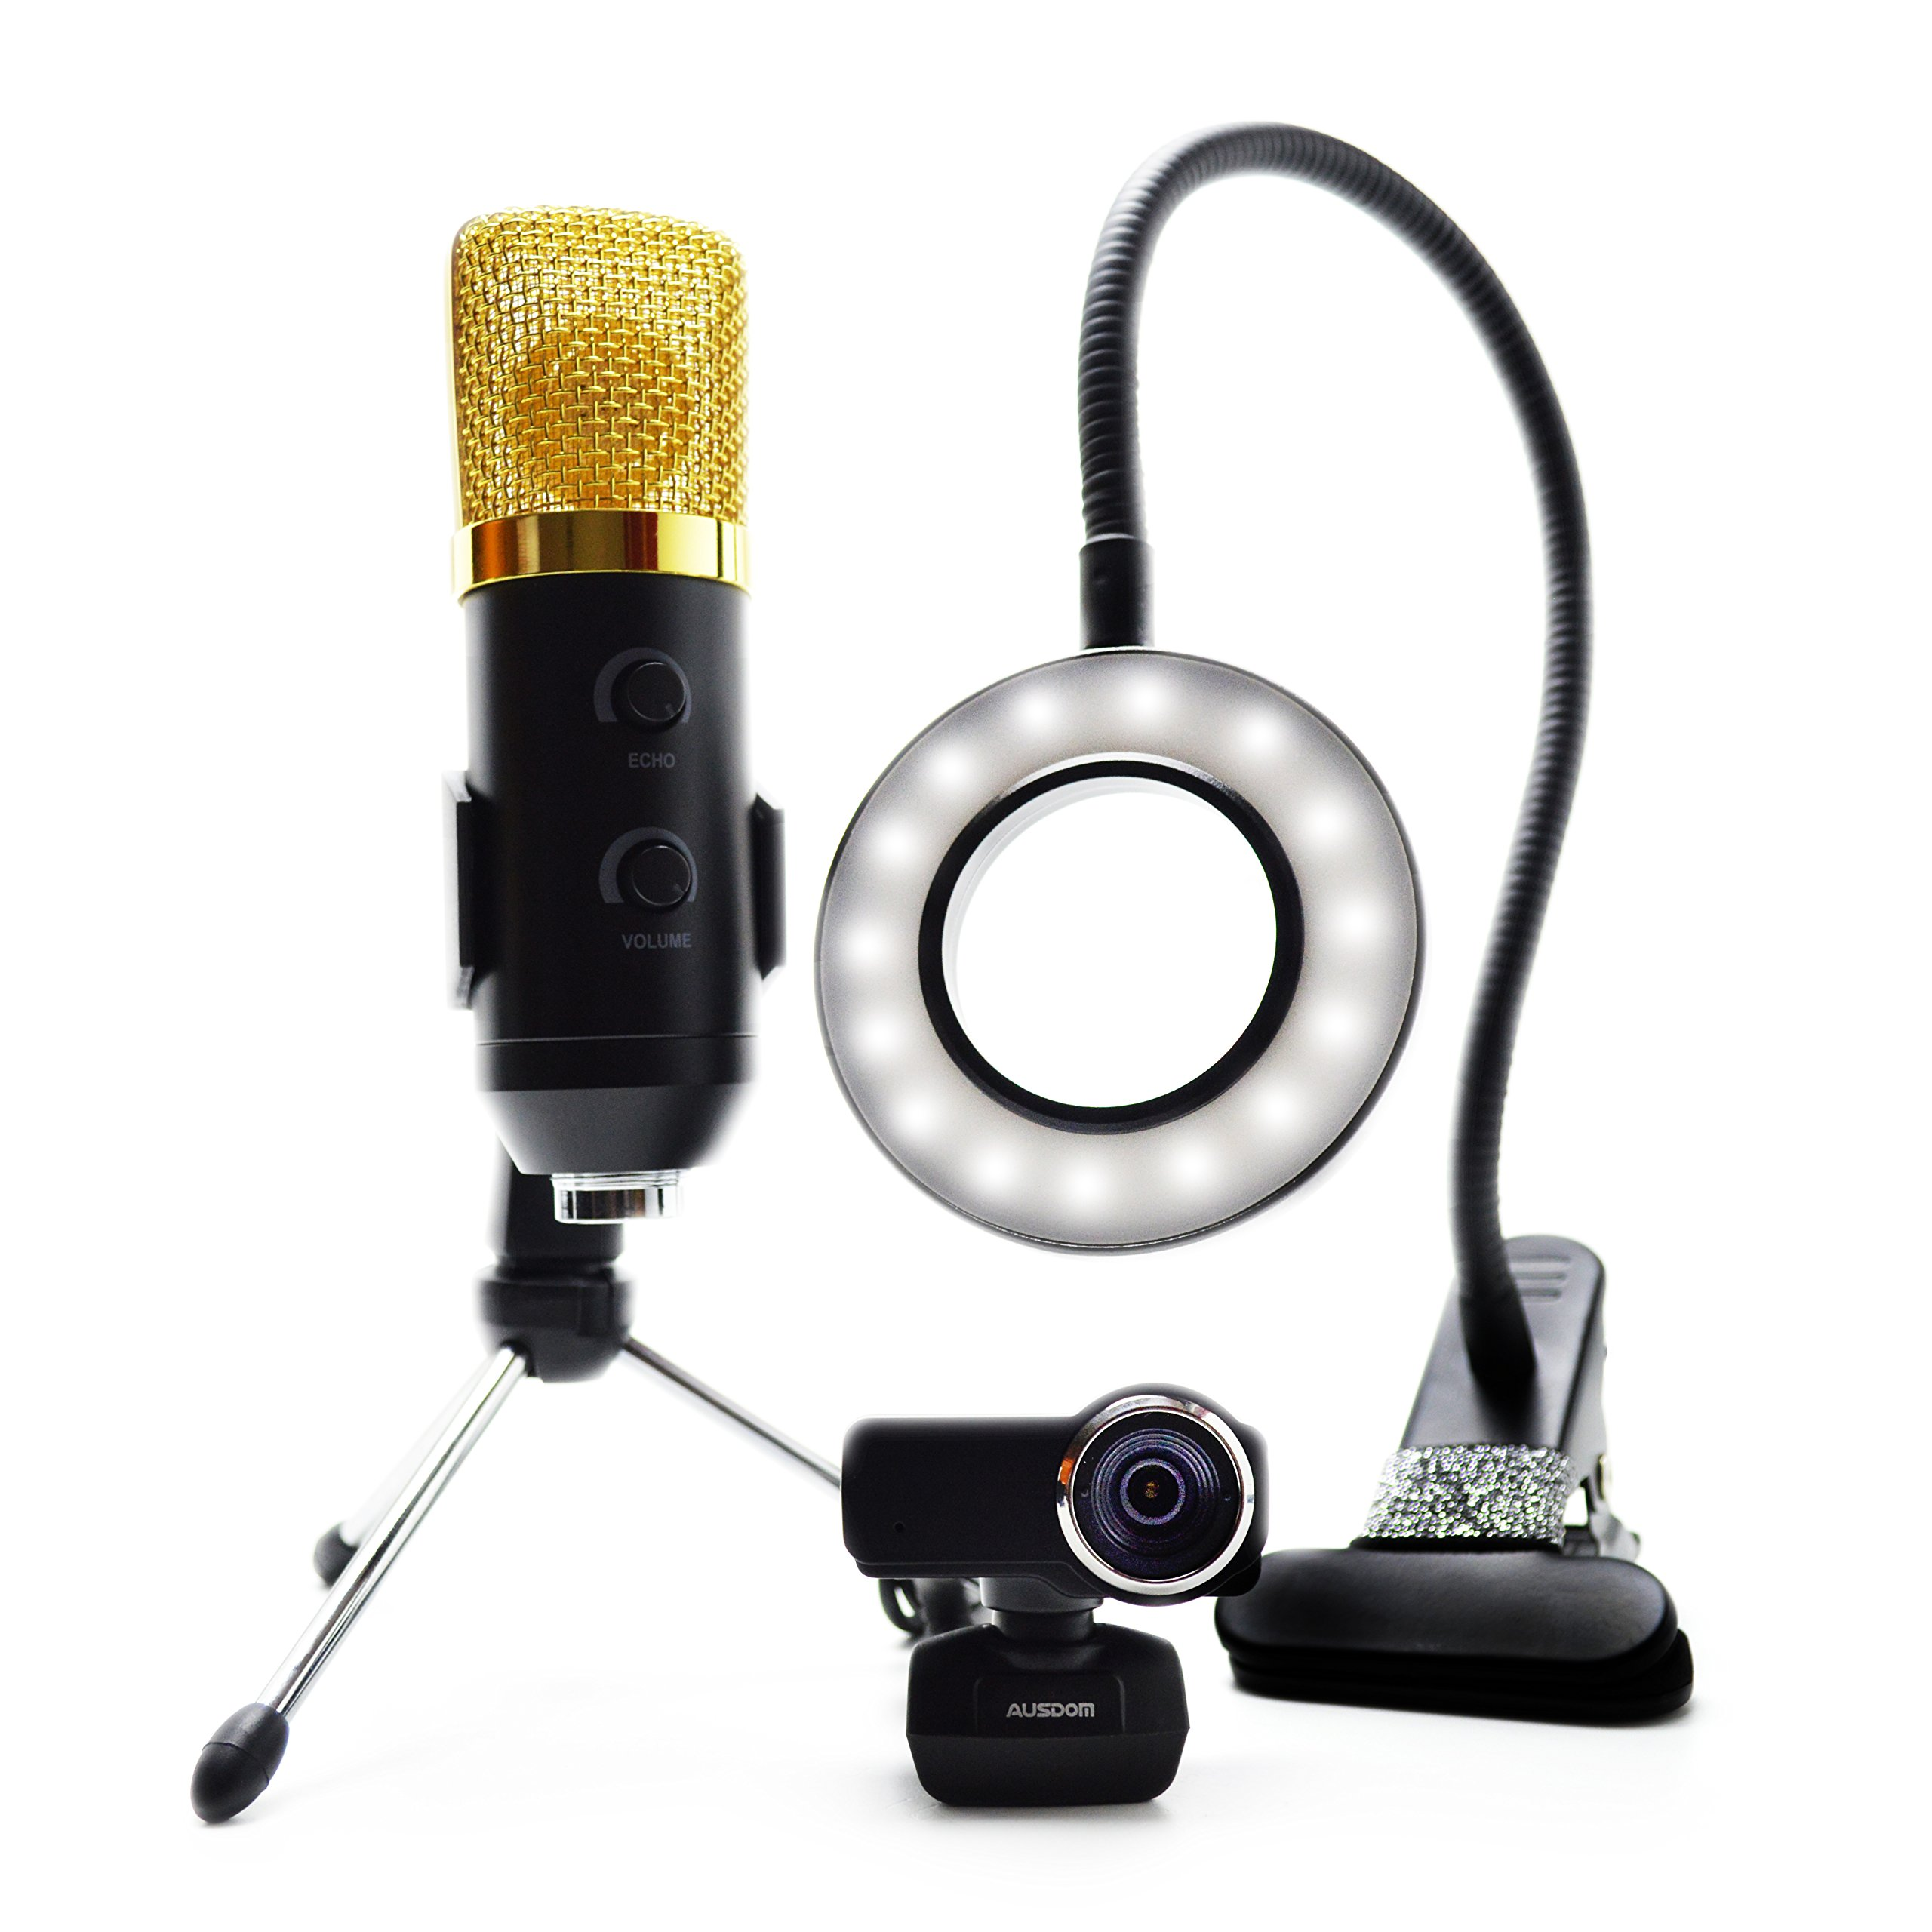 Streaming Camera, Streaming equipment kit Includes 1080p Webcam HD, Streaming Usb Microphone, and LED Video Light. Perfect for Twitch, YouTube, OBS, Mixer, and Skype